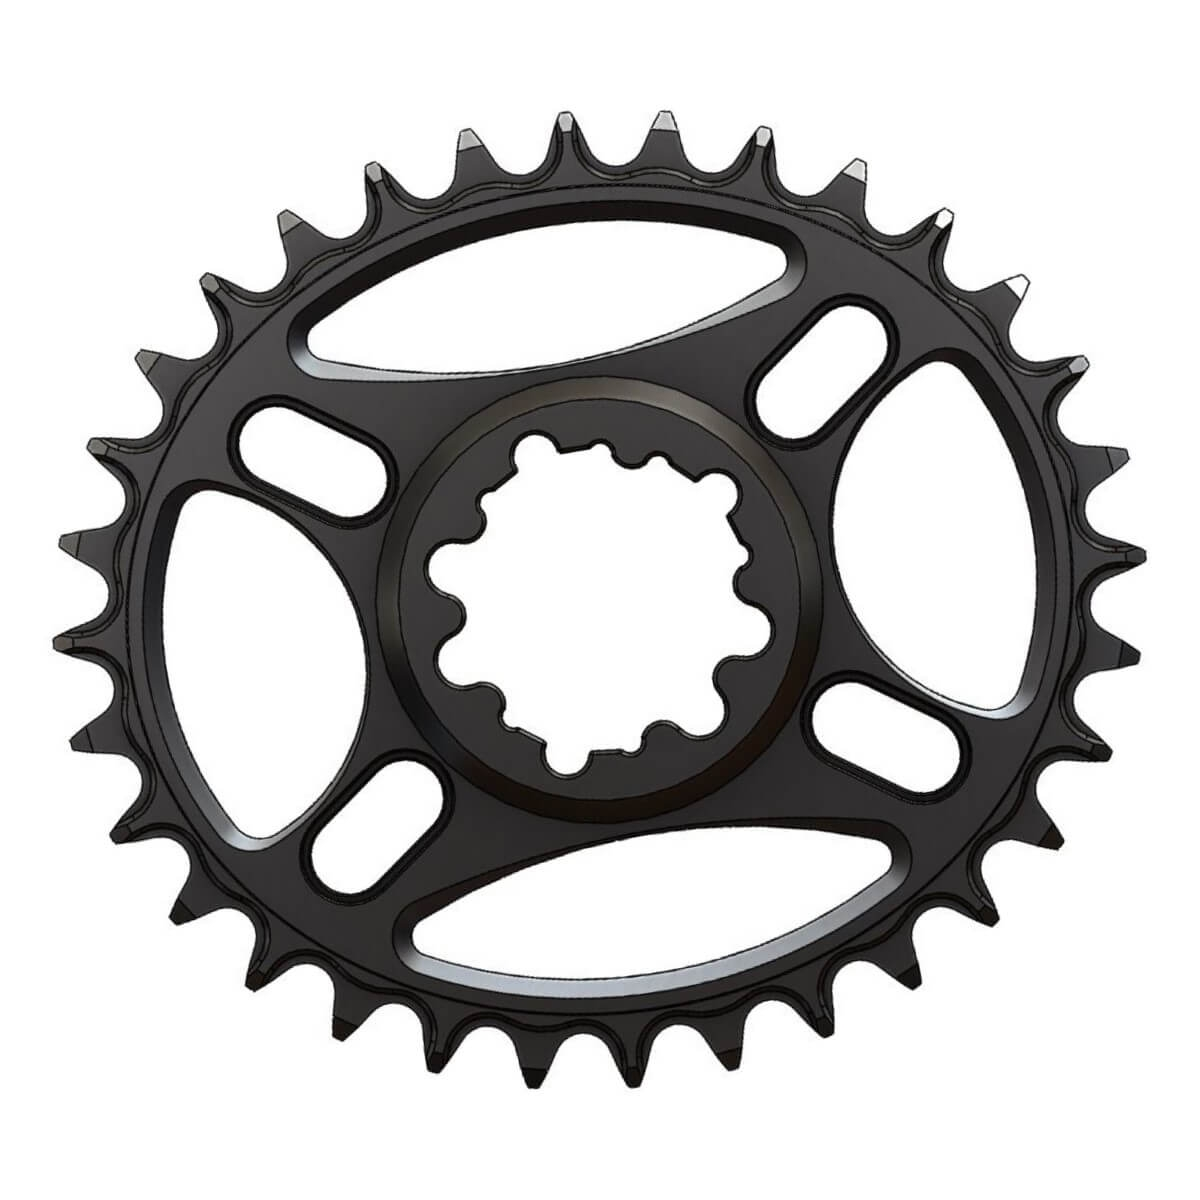 C21 Chainring Elliptic Narrow Wide 32T for Sram direct dub. Offset 3mm. SRAM Eagle